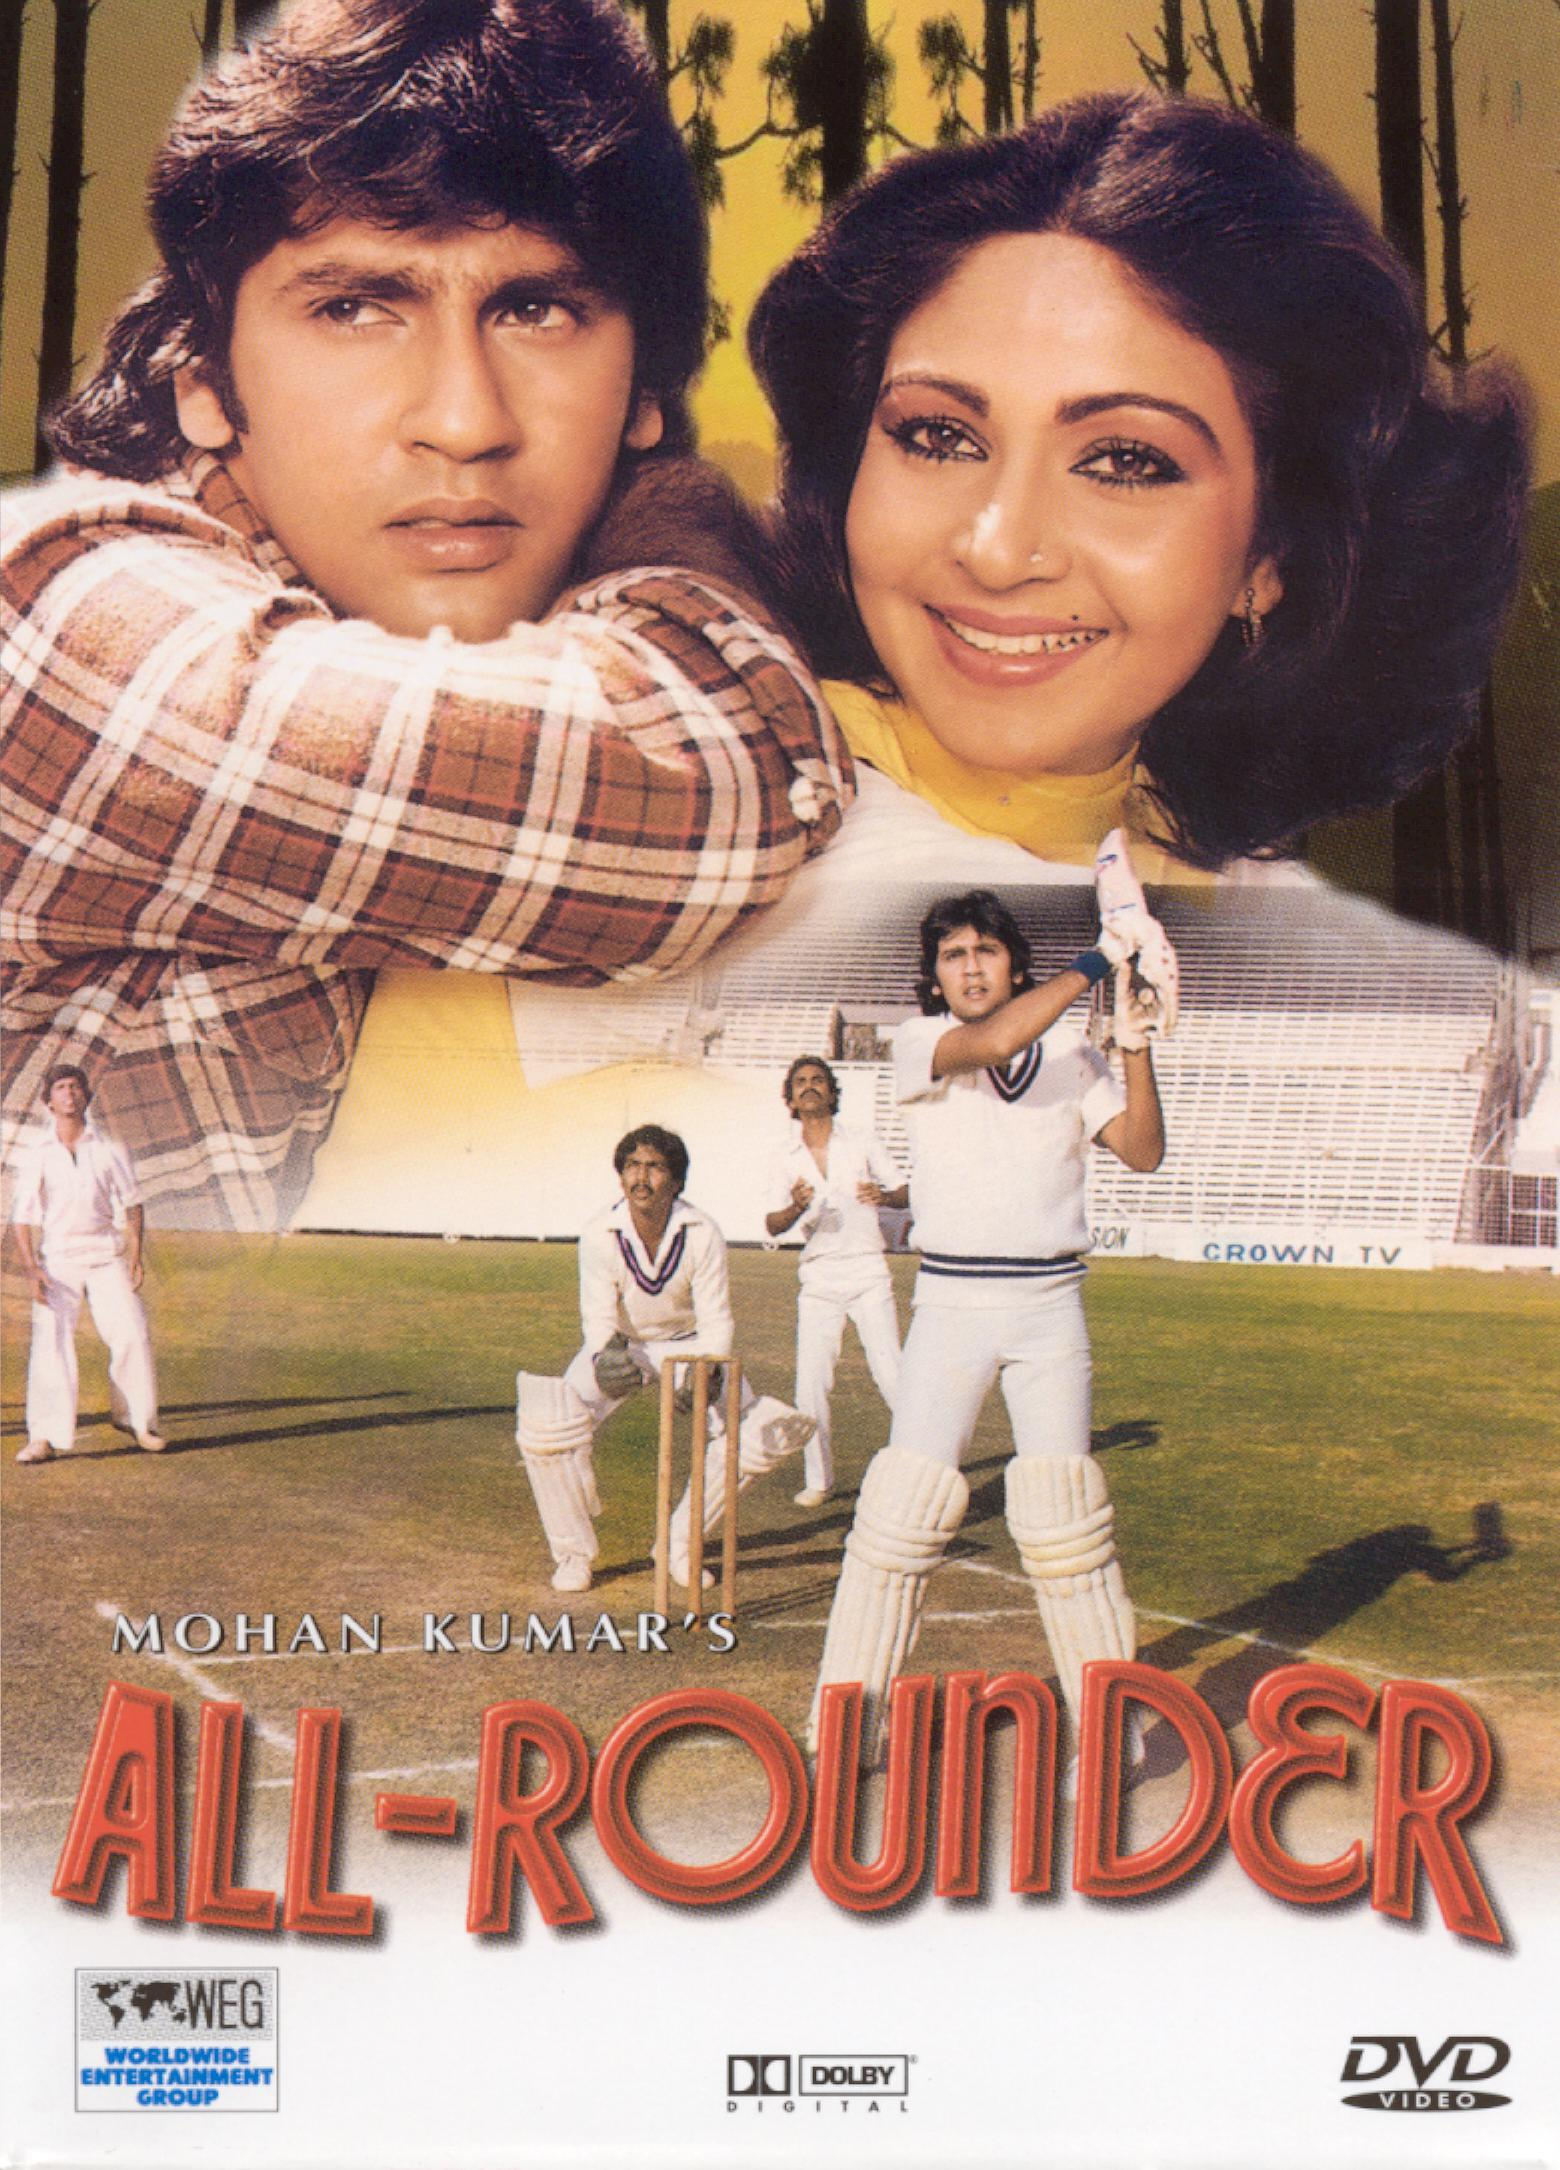 All-Rounder